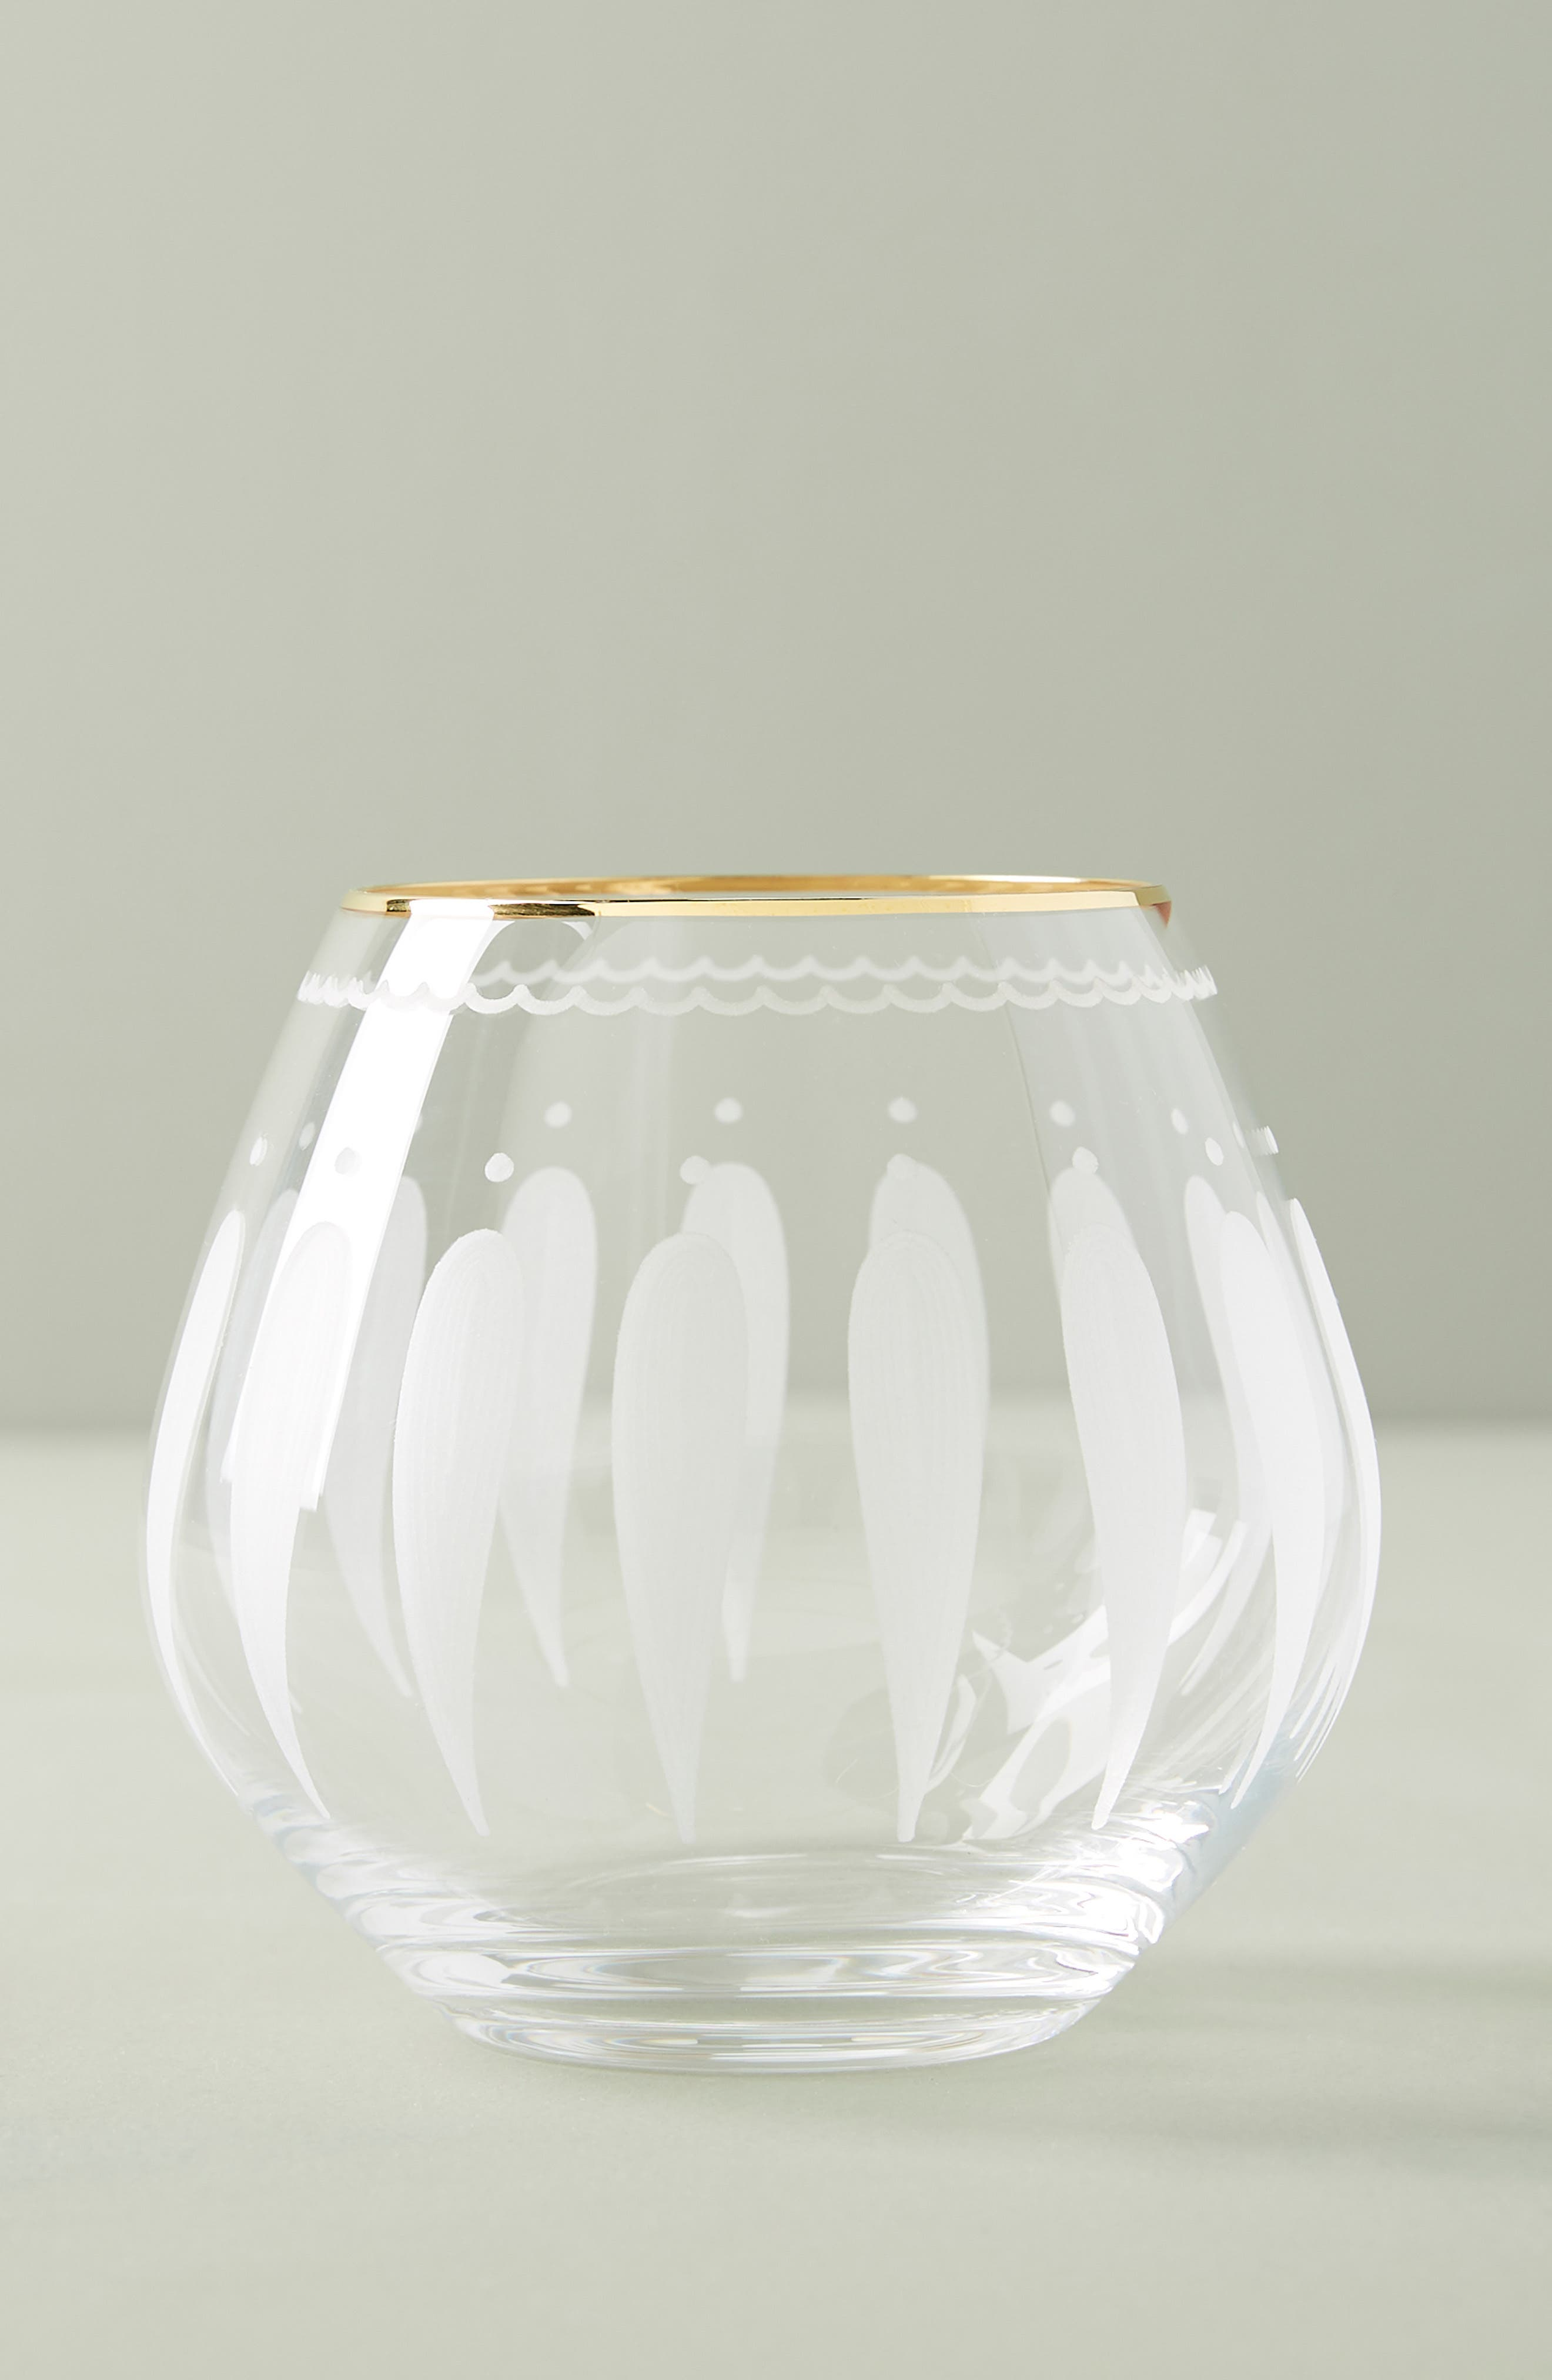 Odele Set of 4 Stemless Wine Glasses,                             Main thumbnail 1, color,                             CLEAR